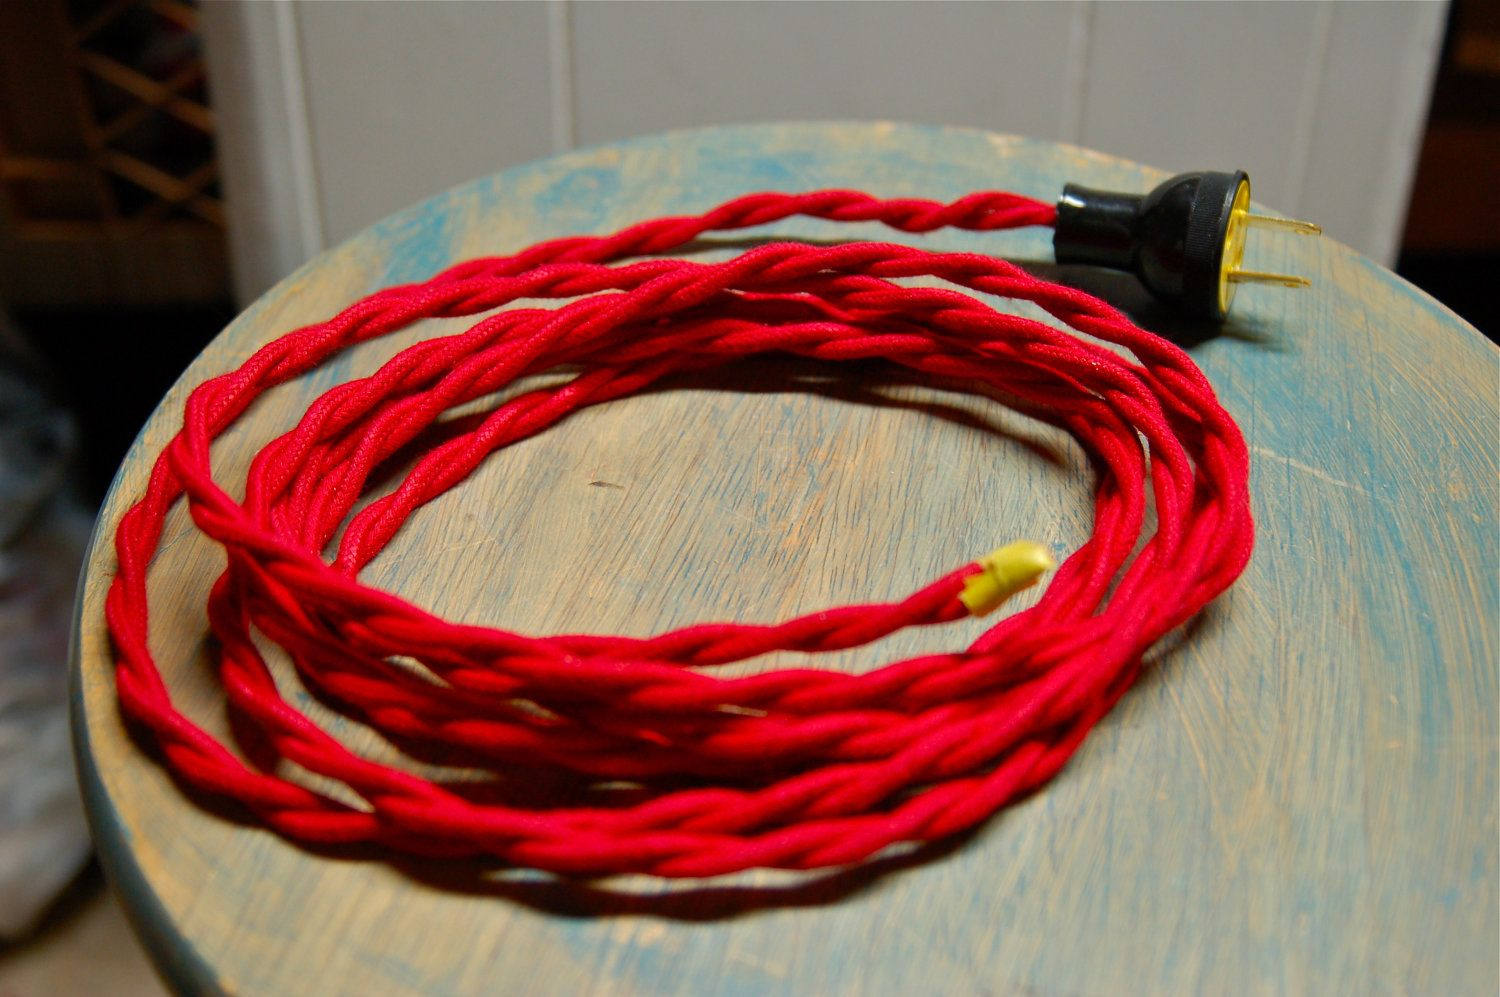 Red Twisted Cloth Covered Wire Plug 8 Vintage Kit Fabric Wiring Lamp Electrical Cord Light Socket 1799 Via Etsy